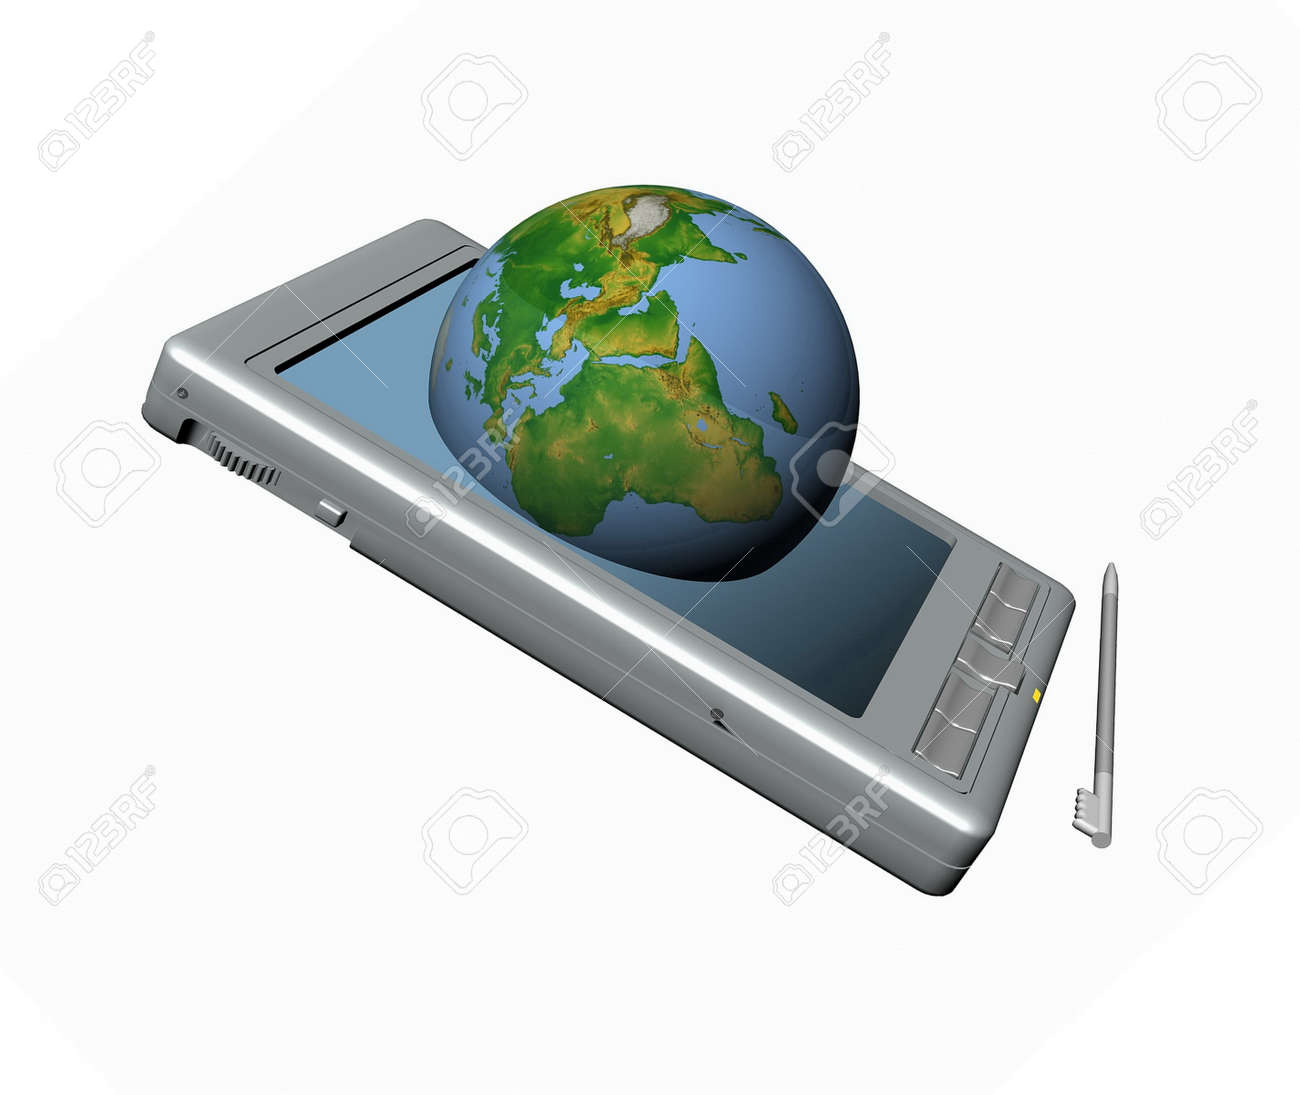 pocket pc and blue globe a white background. Stock Photo - 11984409